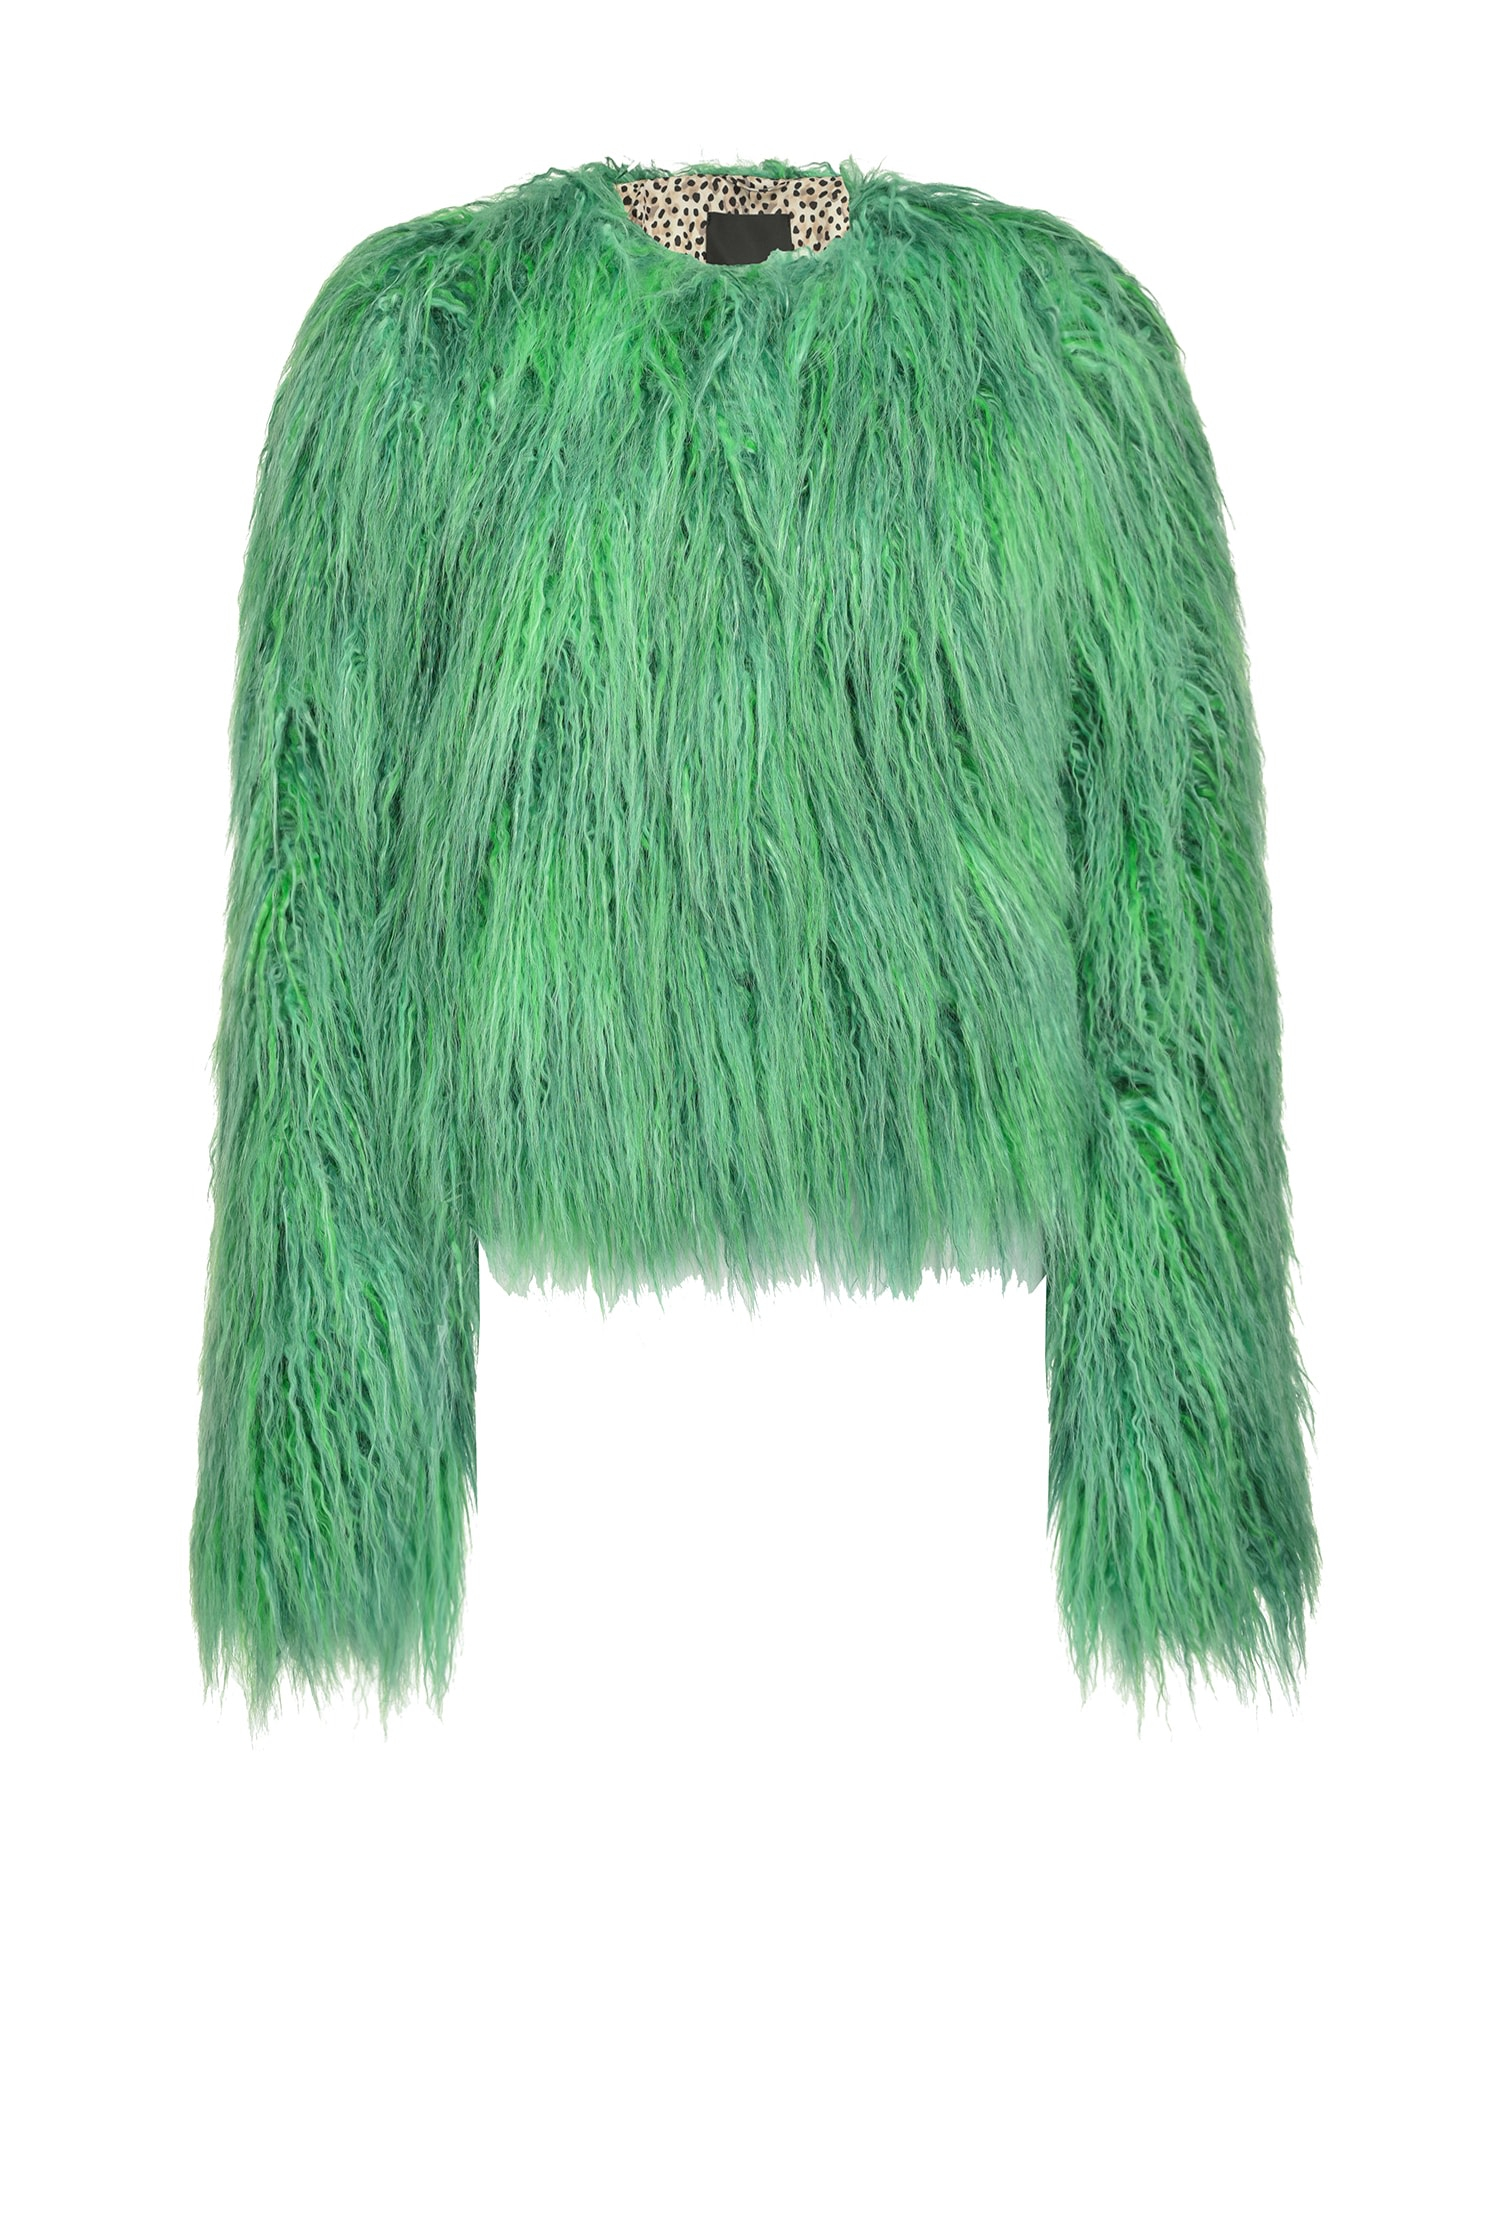 SHOPPING ON LINE PINKO CABAN FAUX FUR EFFETTO MONGOLIA IONOSFERA NEW COLLECTION WOMEN'S FALL WINTER 2020/2021